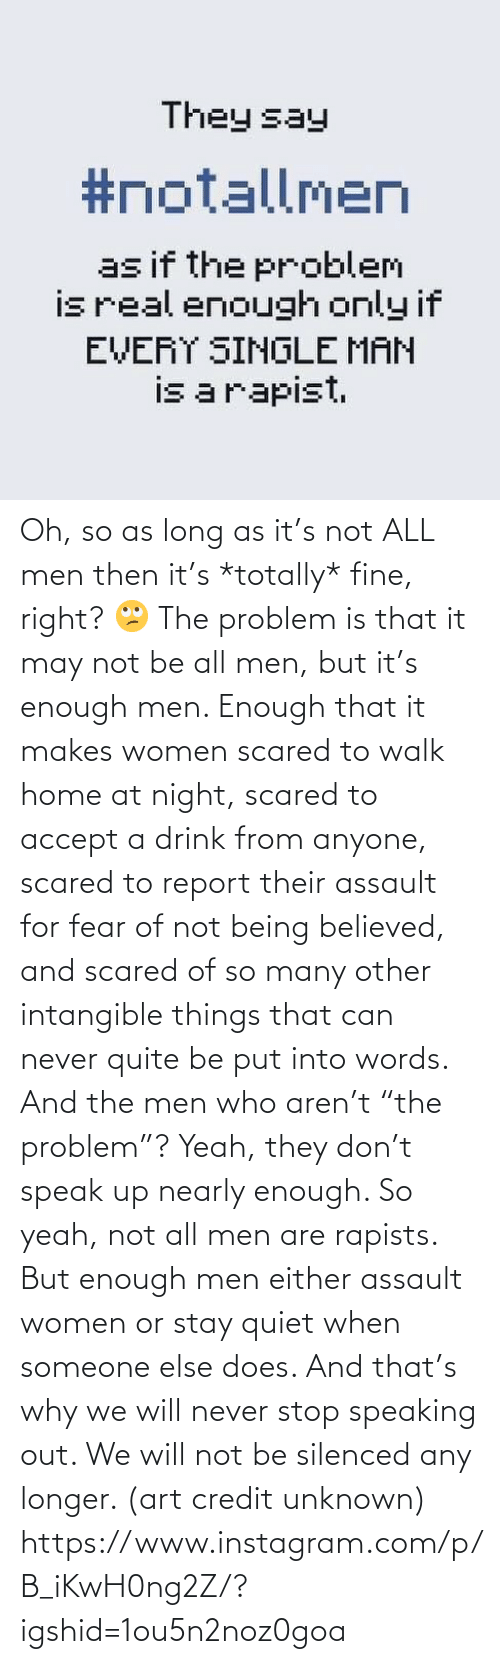 """Not All: Oh, so as long as it's not ALL men then it's *totally* fine, right? 🙄 The problem is that it may not be all men, but it's enough men. Enough that it makes women scared to walk home at night, scared to accept a drink from anyone, scared to report their assault for fear of not being believed, and scared of so many other intangible things that can never quite be put into words. And the men who aren't """"the problem""""? Yeah, they don't speak up nearly enough. So yeah, not all men are rapists. But enough men either assault women or stay quiet when someone else does. And that's why we will never stop speaking out. We will not be silenced any longer. (art credit unknown)  https://www.instagram.com/p/B_iKwH0ng2Z/?igshid=1ou5n2noz0goa"""